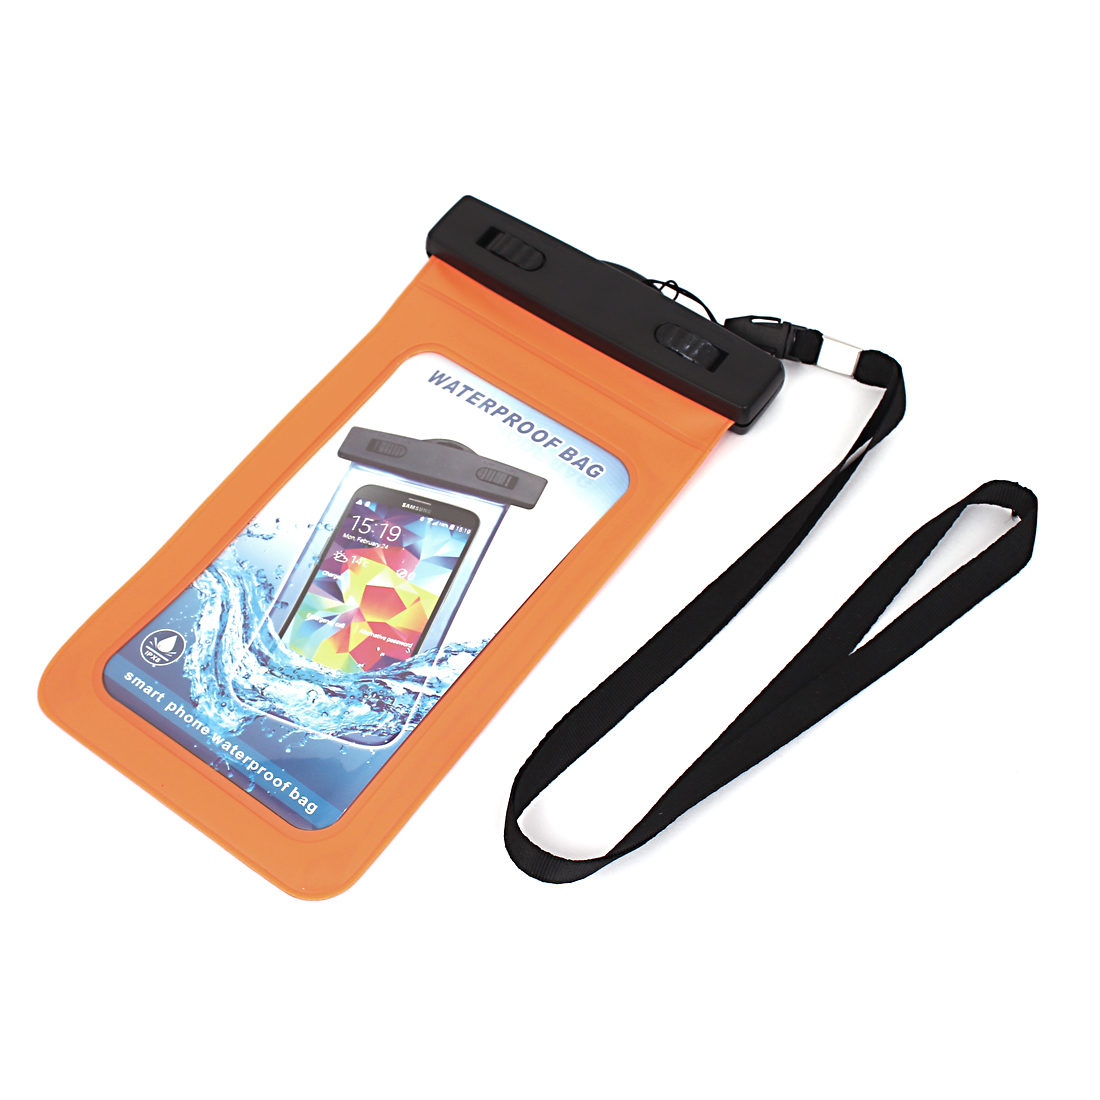 "Unique Bargains Waterproof Bag Holder Pouch Orange for 5.5"" Mobile Phone w Neck Strap"